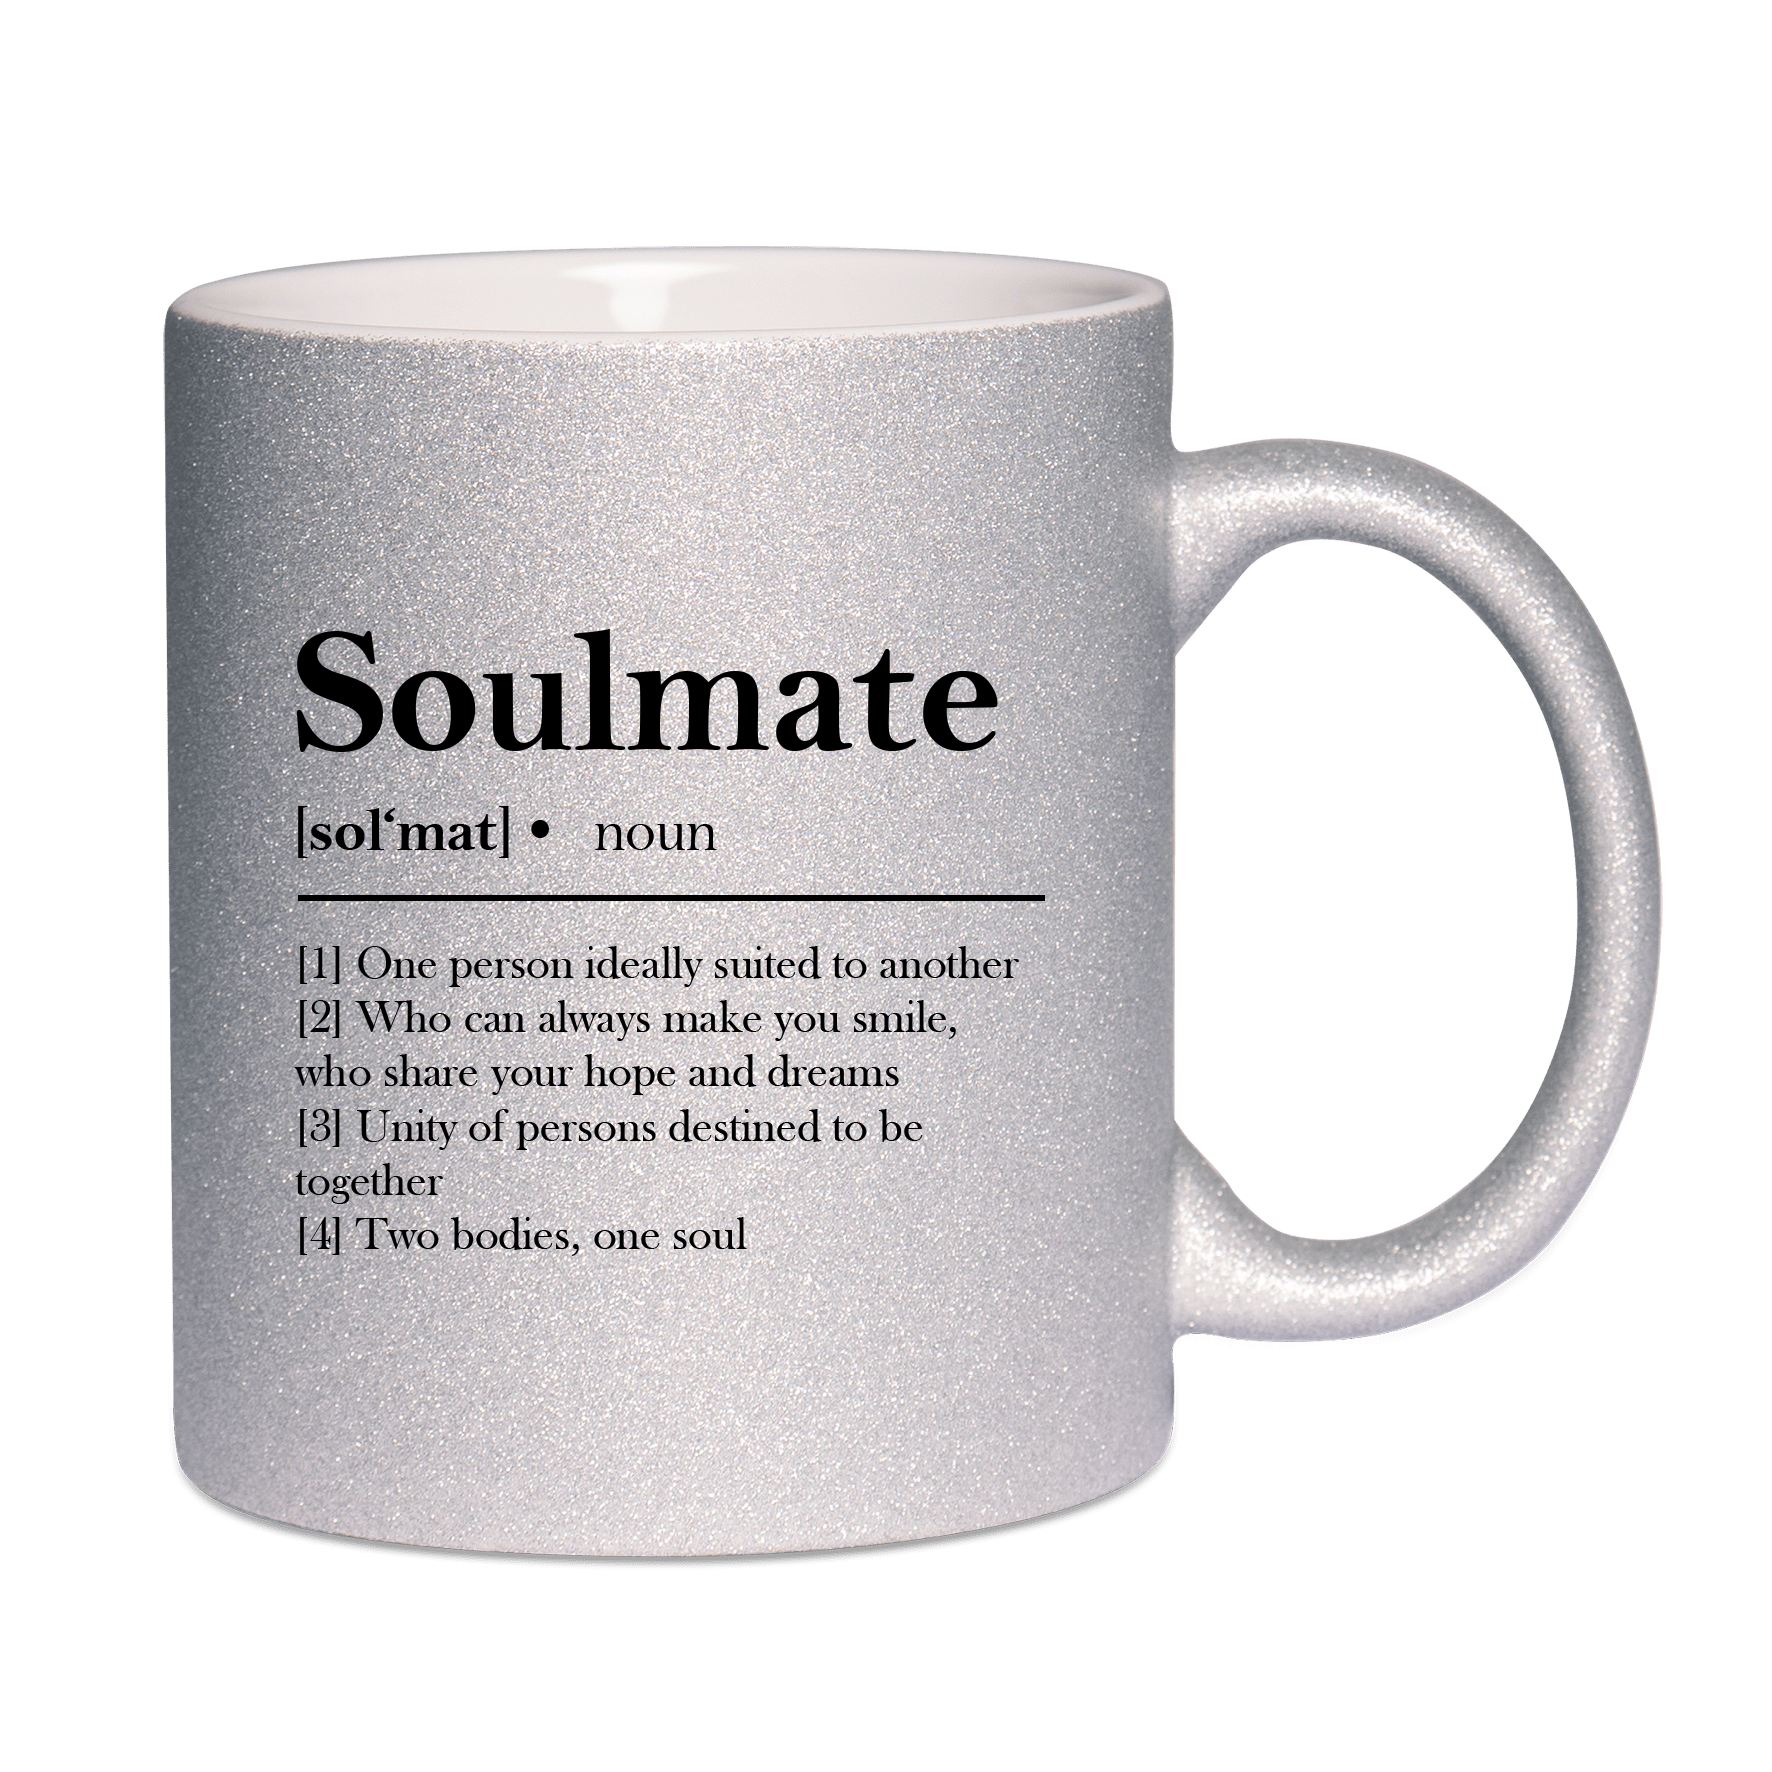 Soulmate - Definition